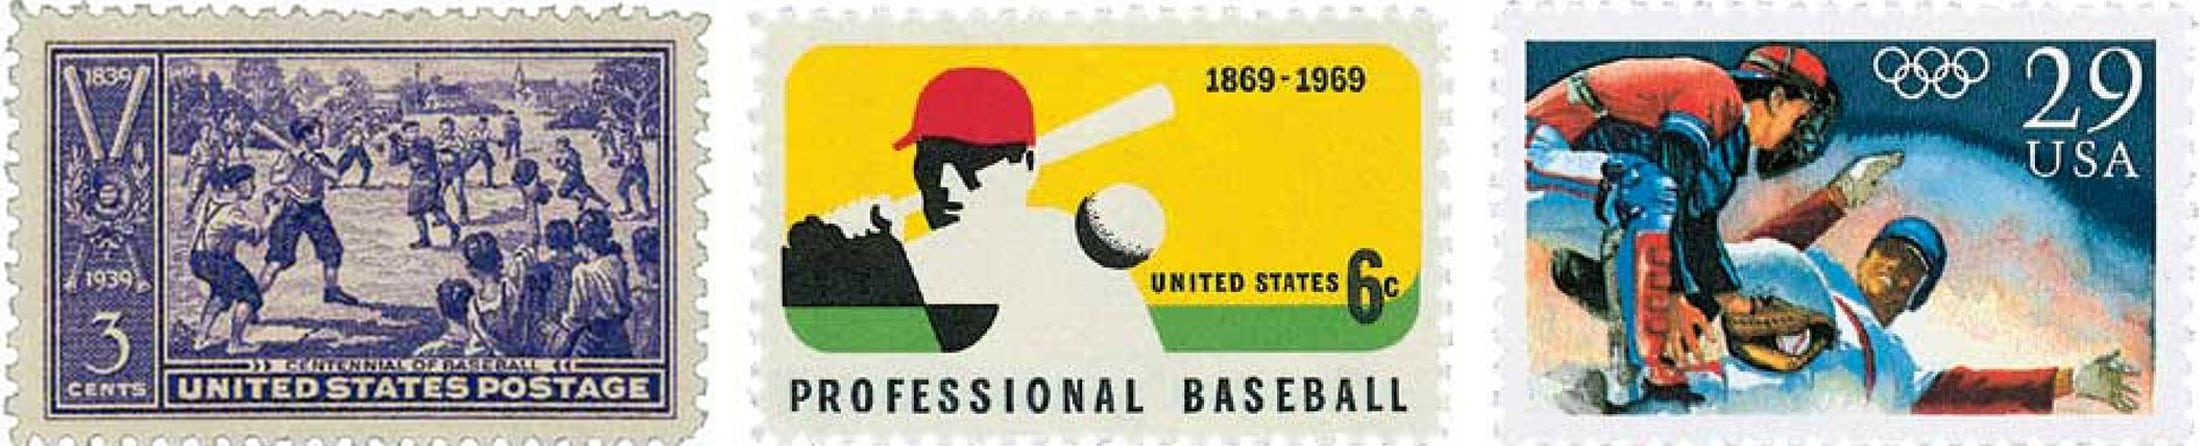 Baseball U.S. Postage Stamps - header